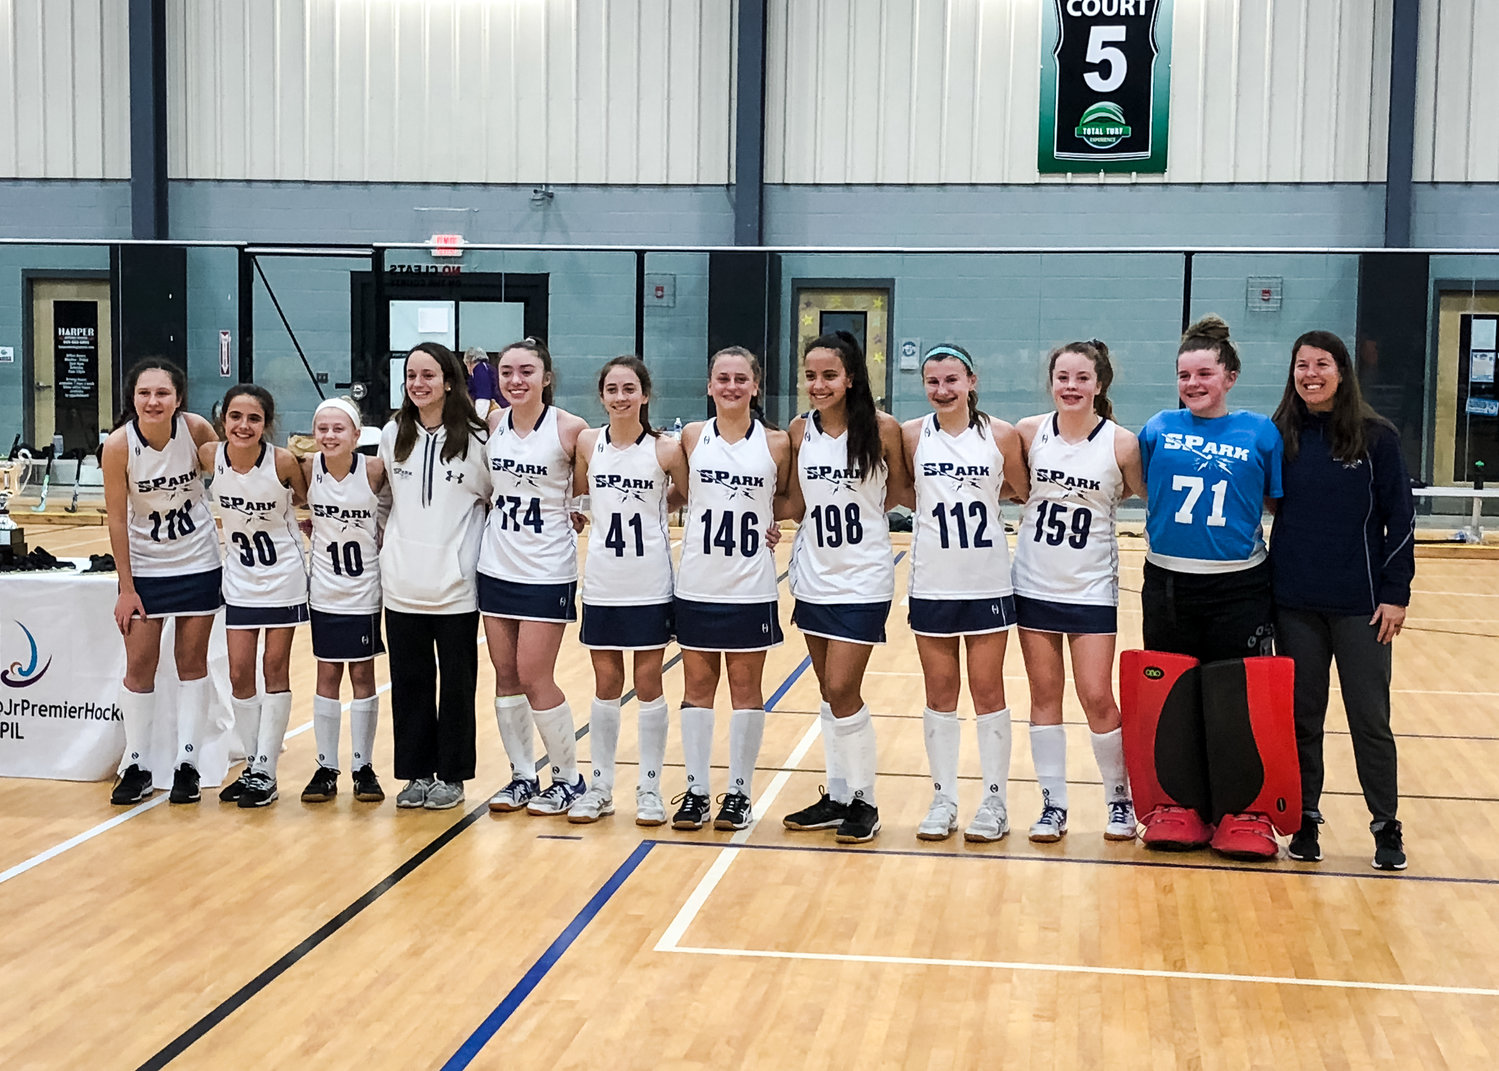 The SPark U14 Blue field hockey team went 12-1 in the Junior Premier Indoor League, winning the championship over Central Penn Purple in a shootout, 3-3(6-5) on February 8.